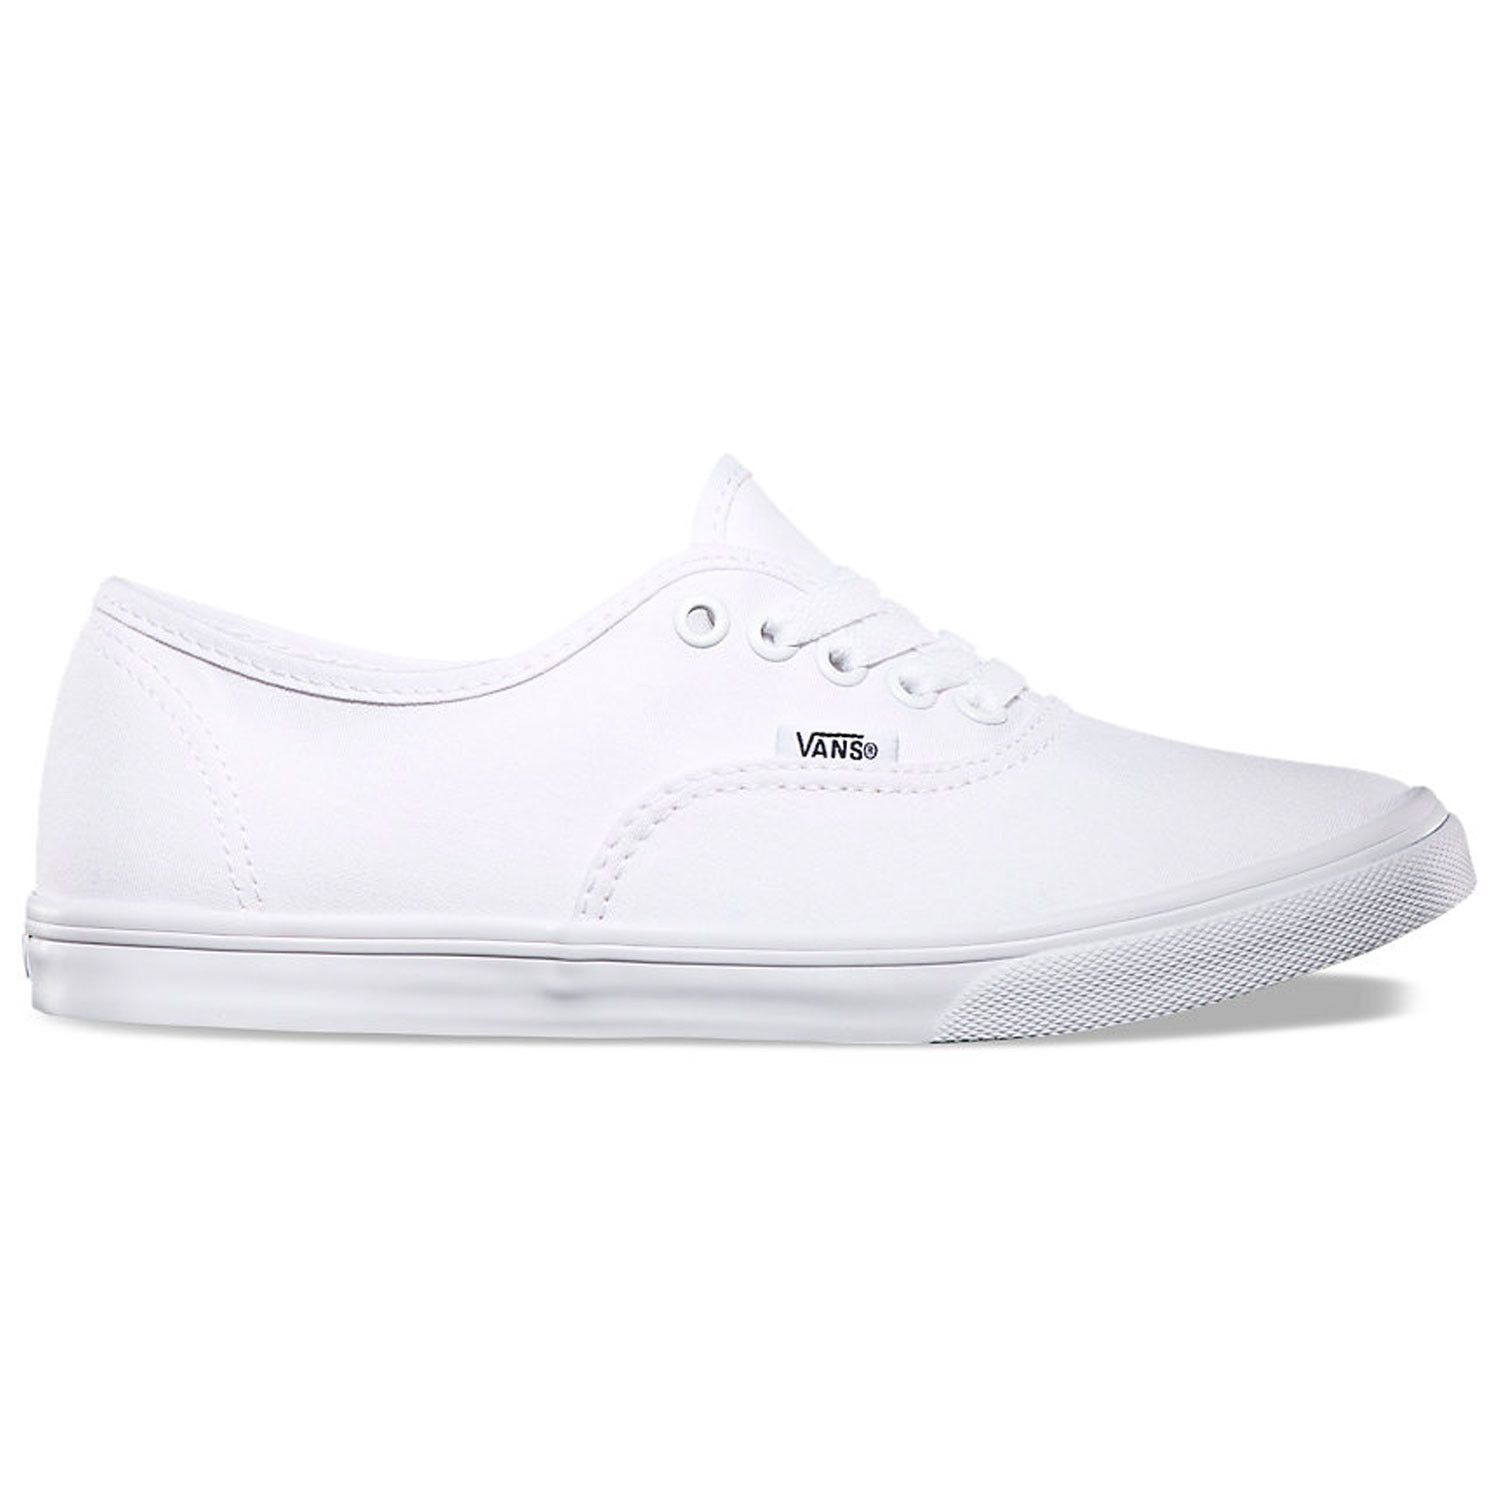 5fb3d2fffb VANS True White True White Authentic Lo Pro Shoe